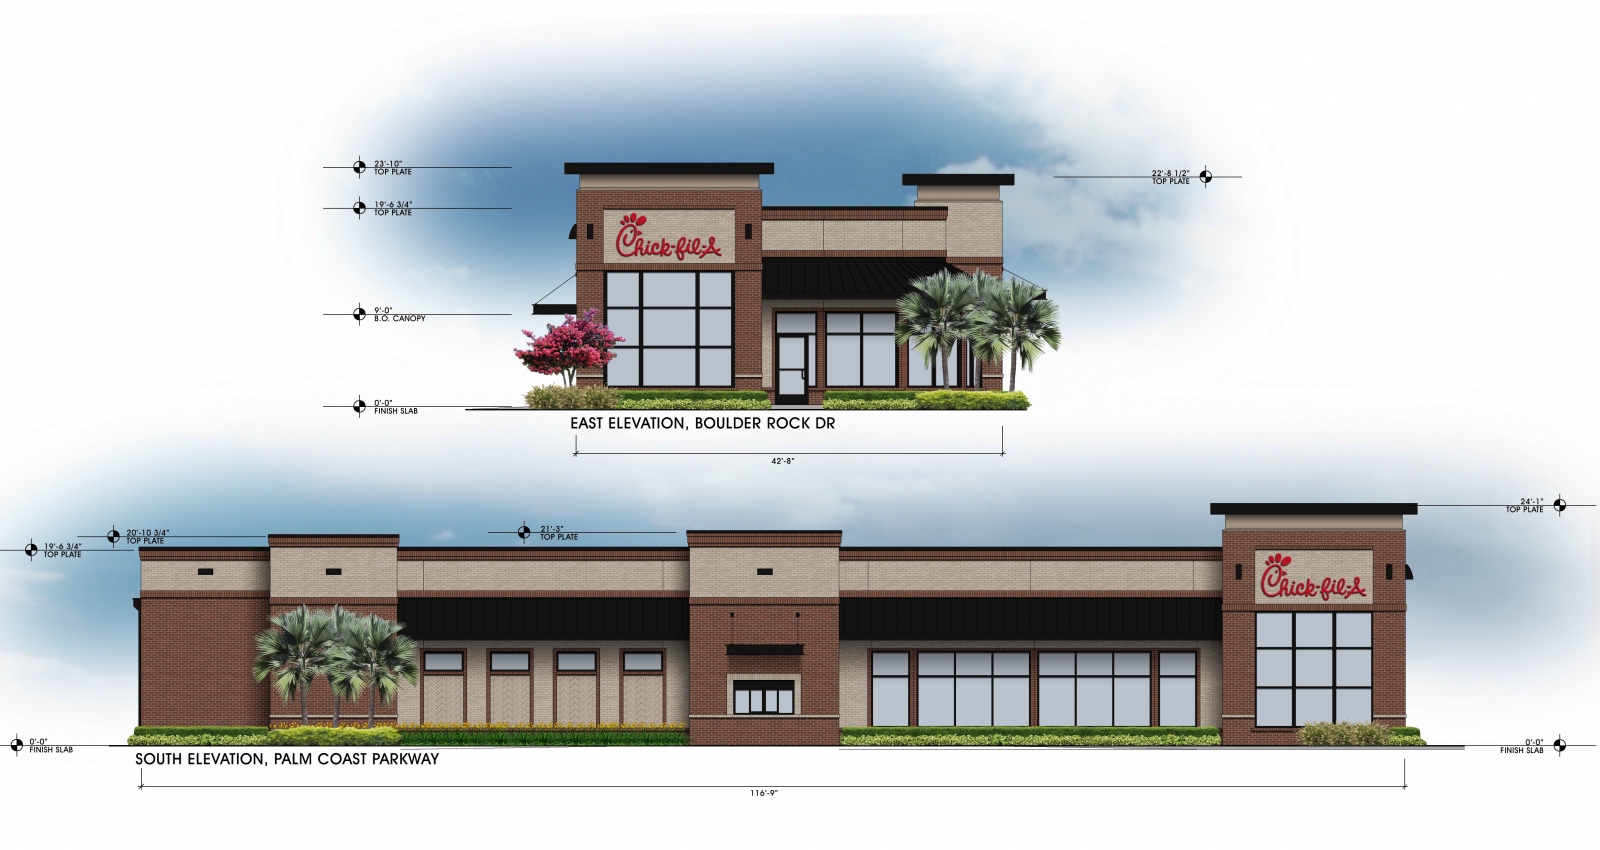 Property Development Chick : Development order for new chick fil a approved by palm